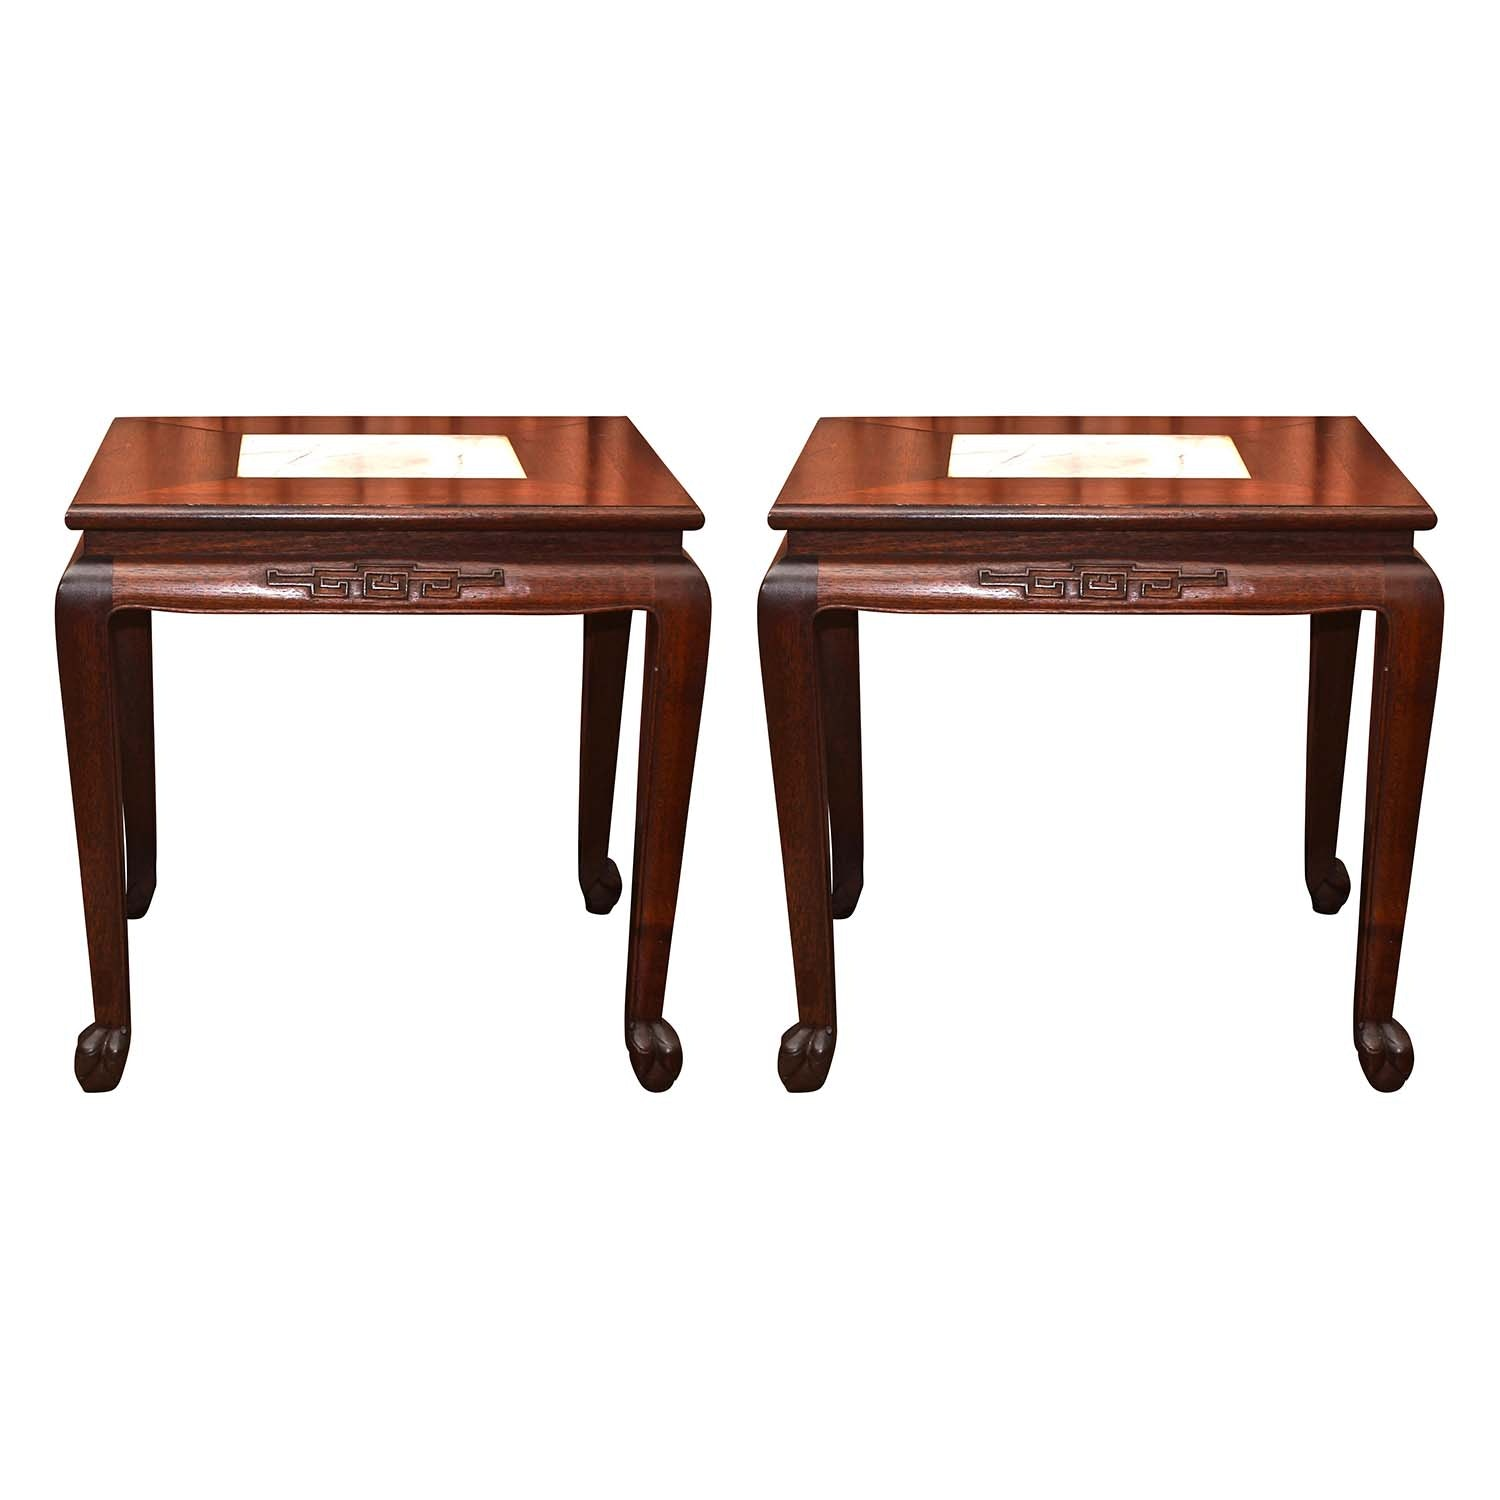 Chinese Marble Top End Tables by Ricardo Lynn & Company, Late 20th Century